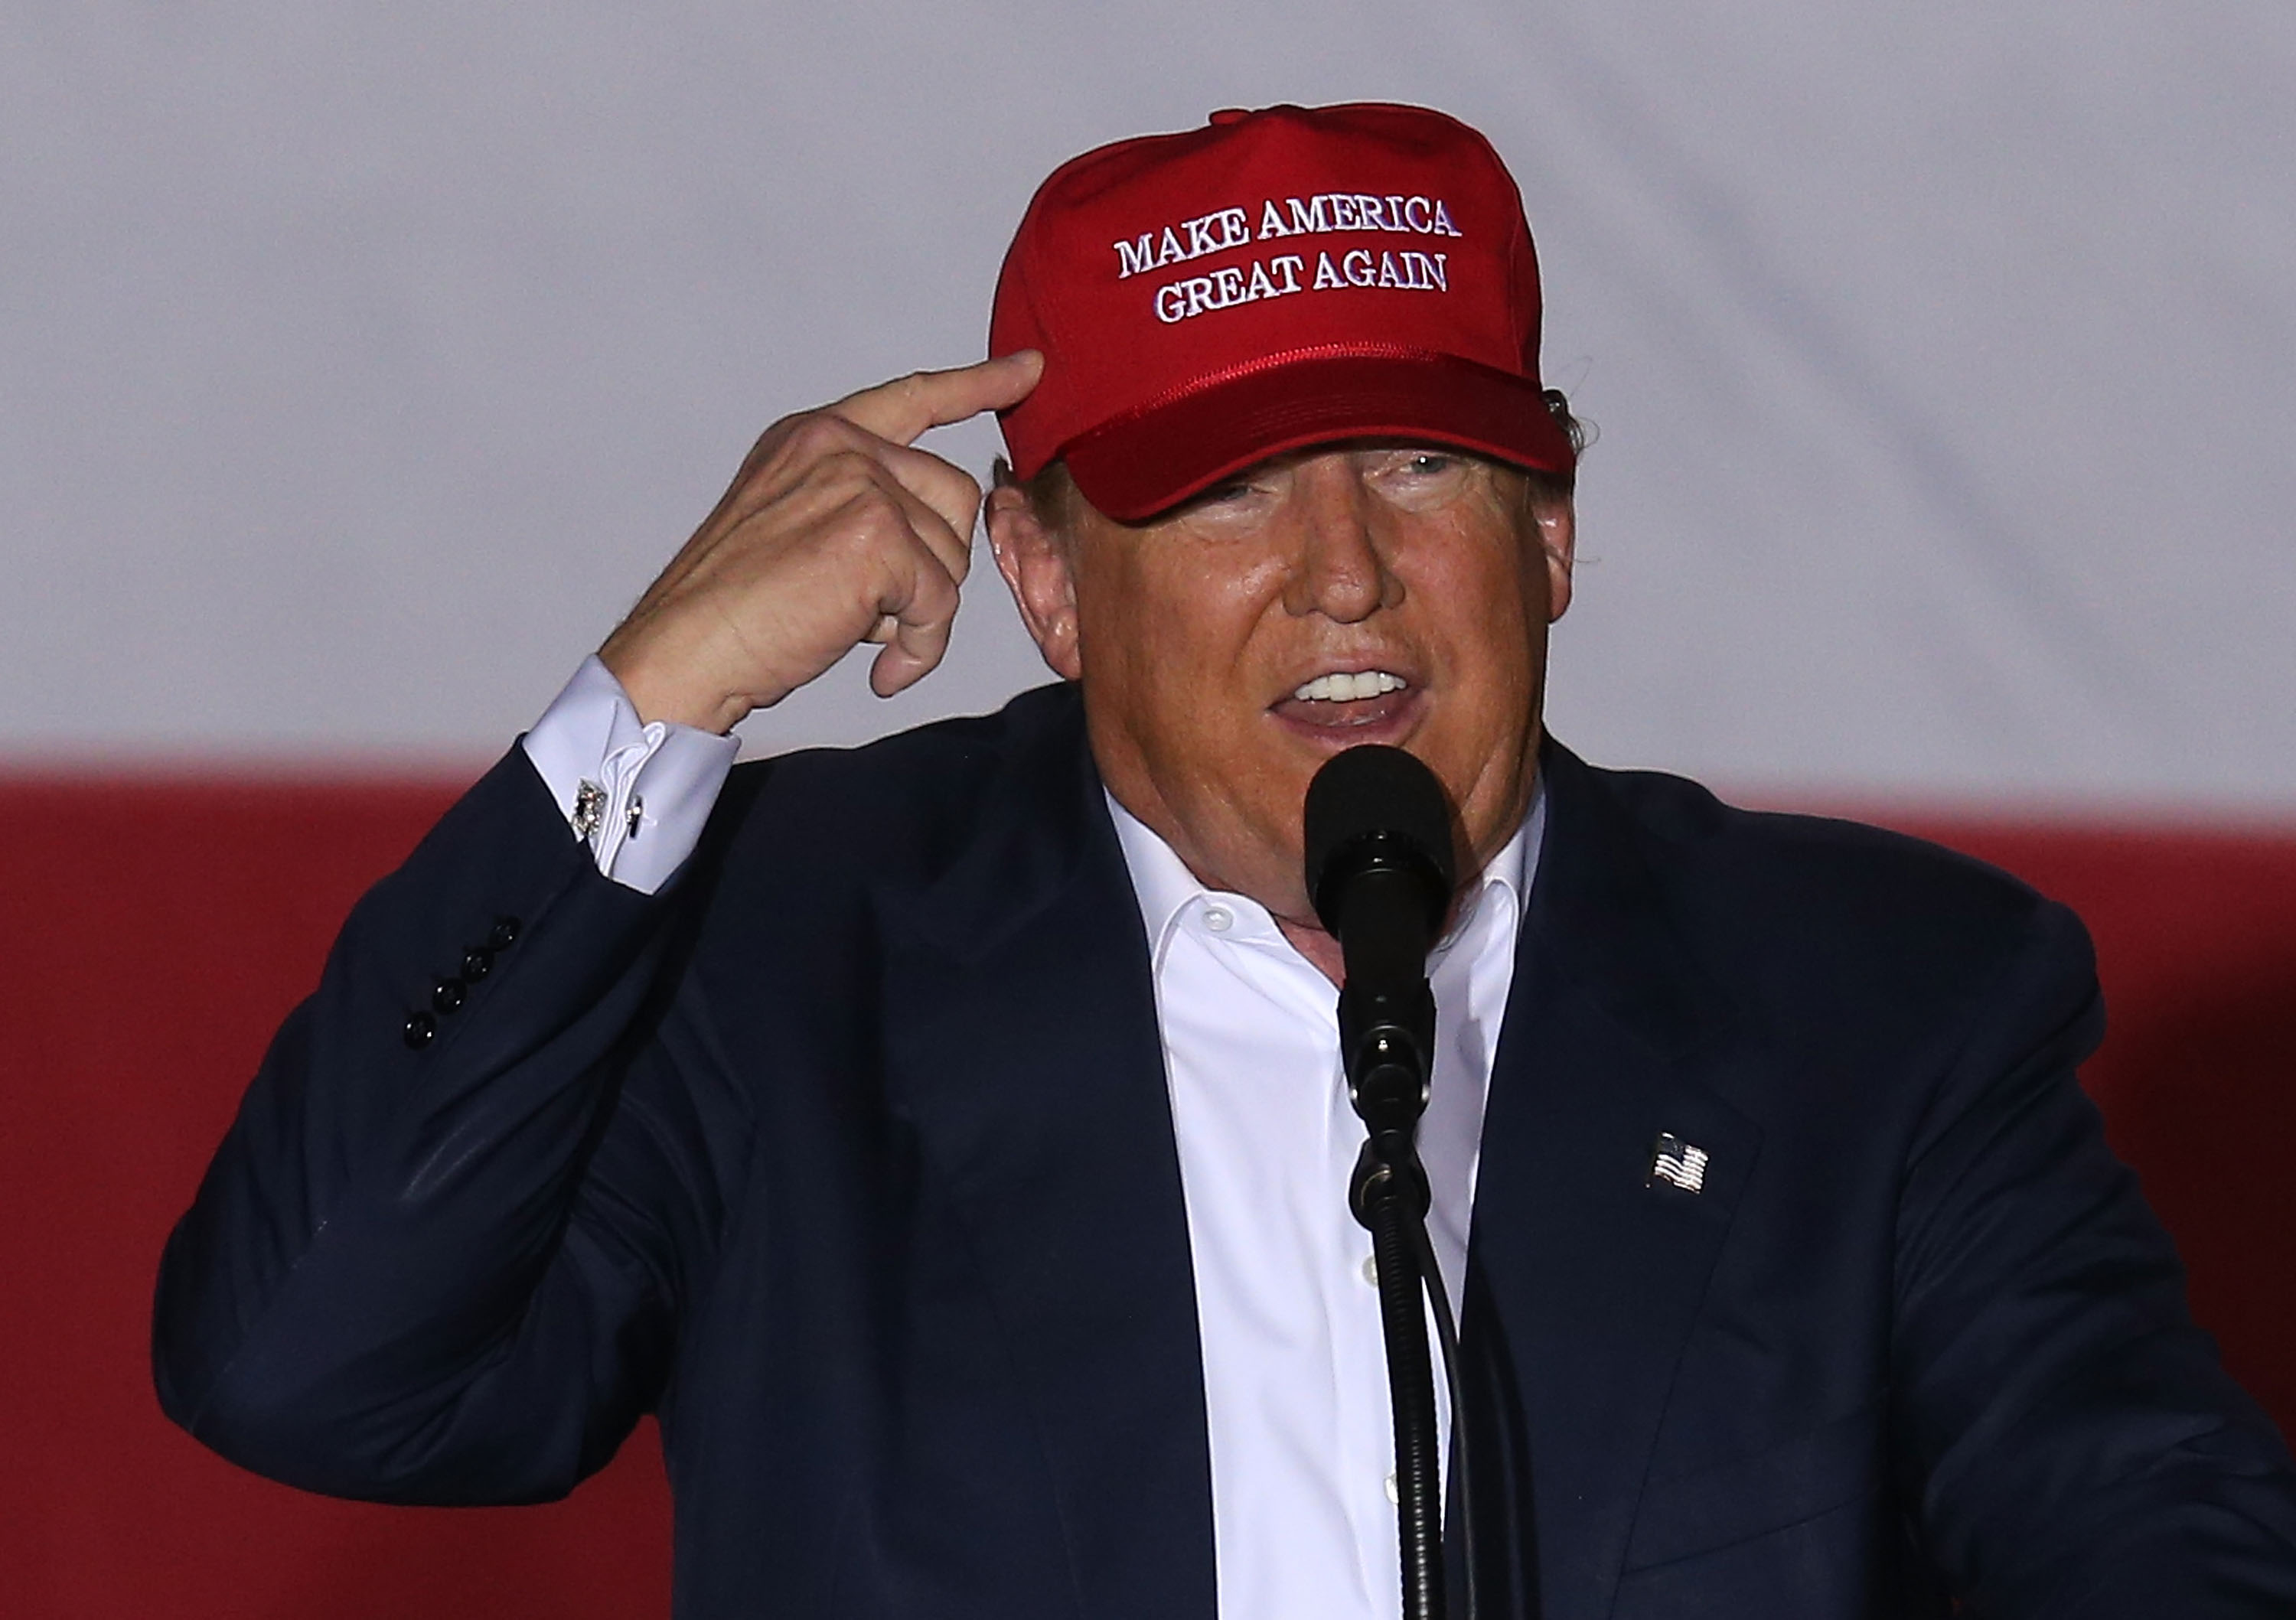 Republican presidential candidate Donald Trump speaks during his campaign rally at the Sunset Cove Amphitheater in Boca Raton, Fla., on March 13, 2016.